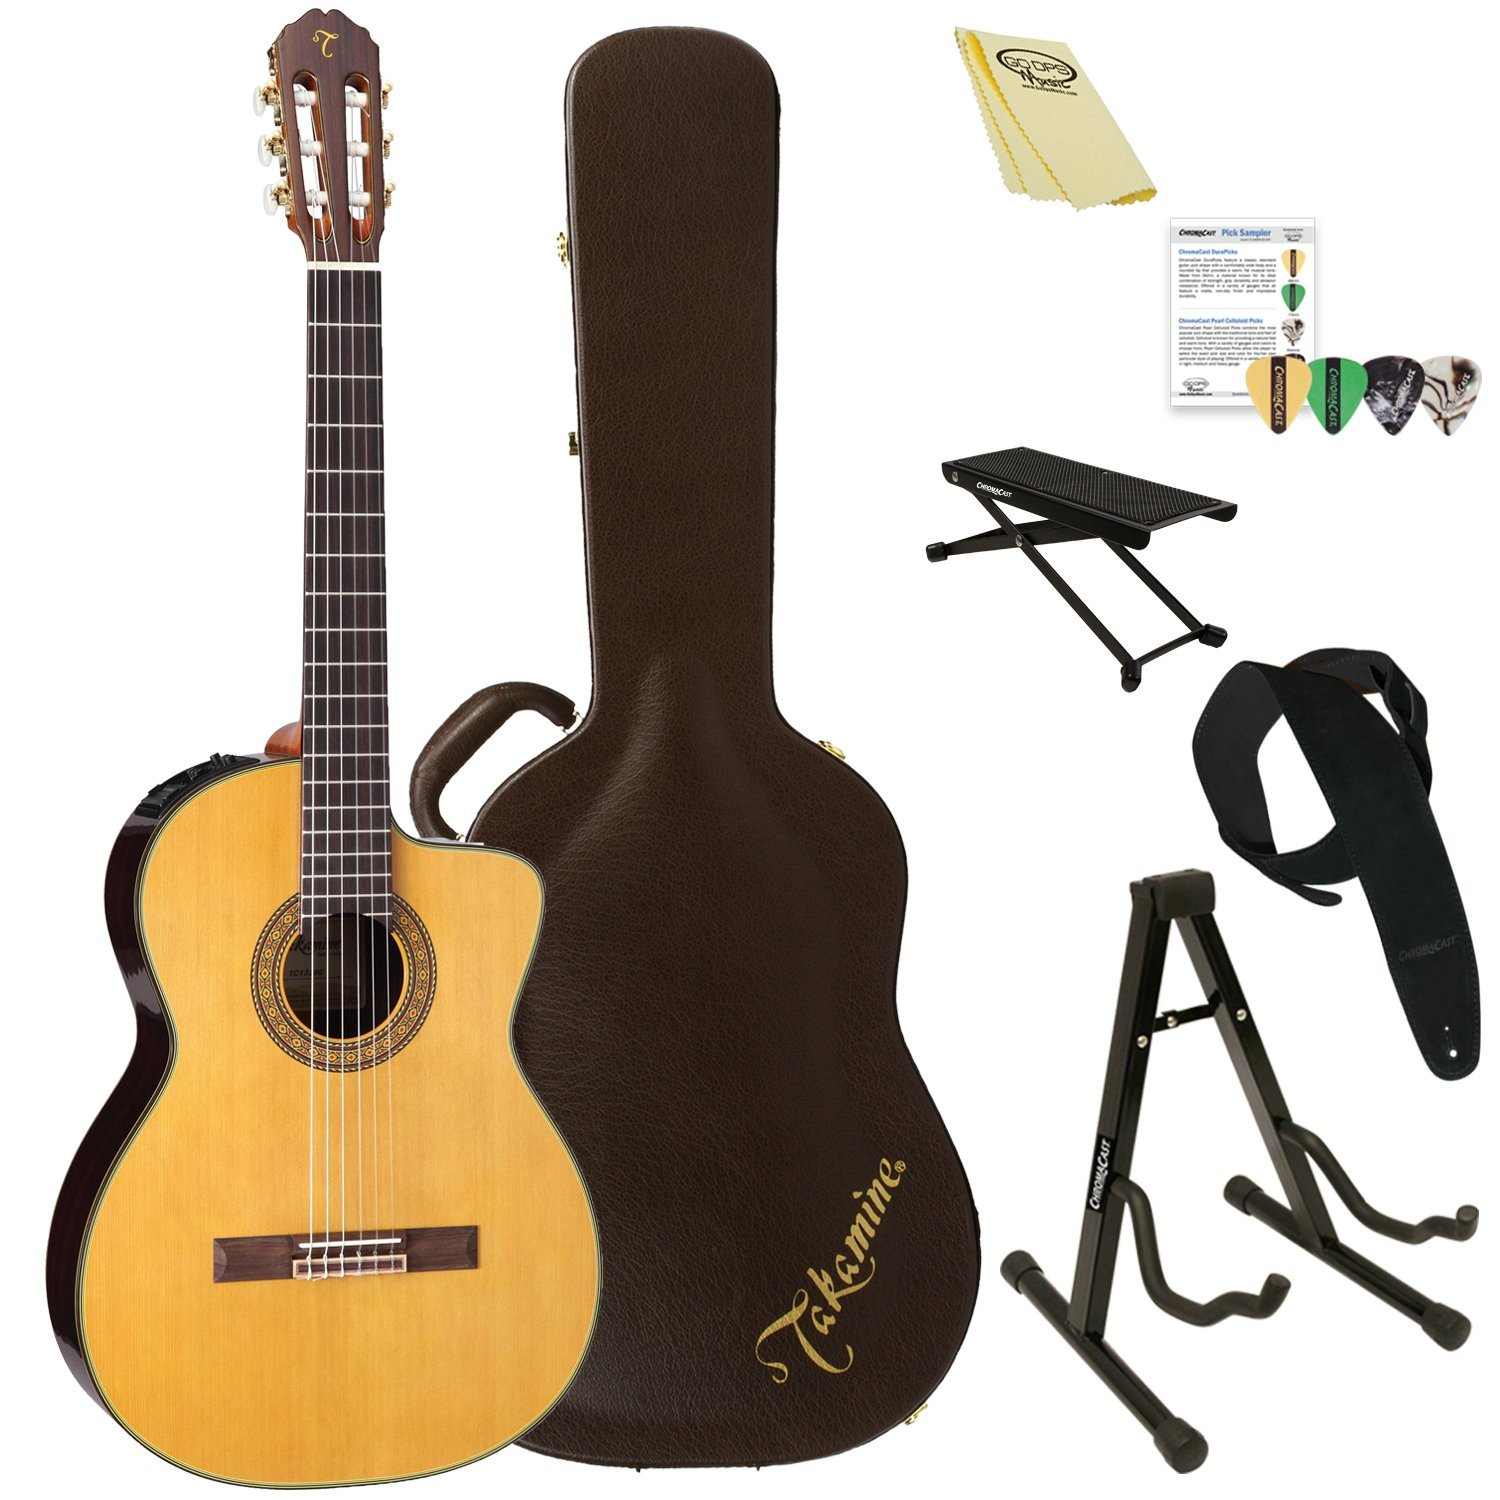 Top 5 Best Acoustic Guitar under 1000 Dollars 3